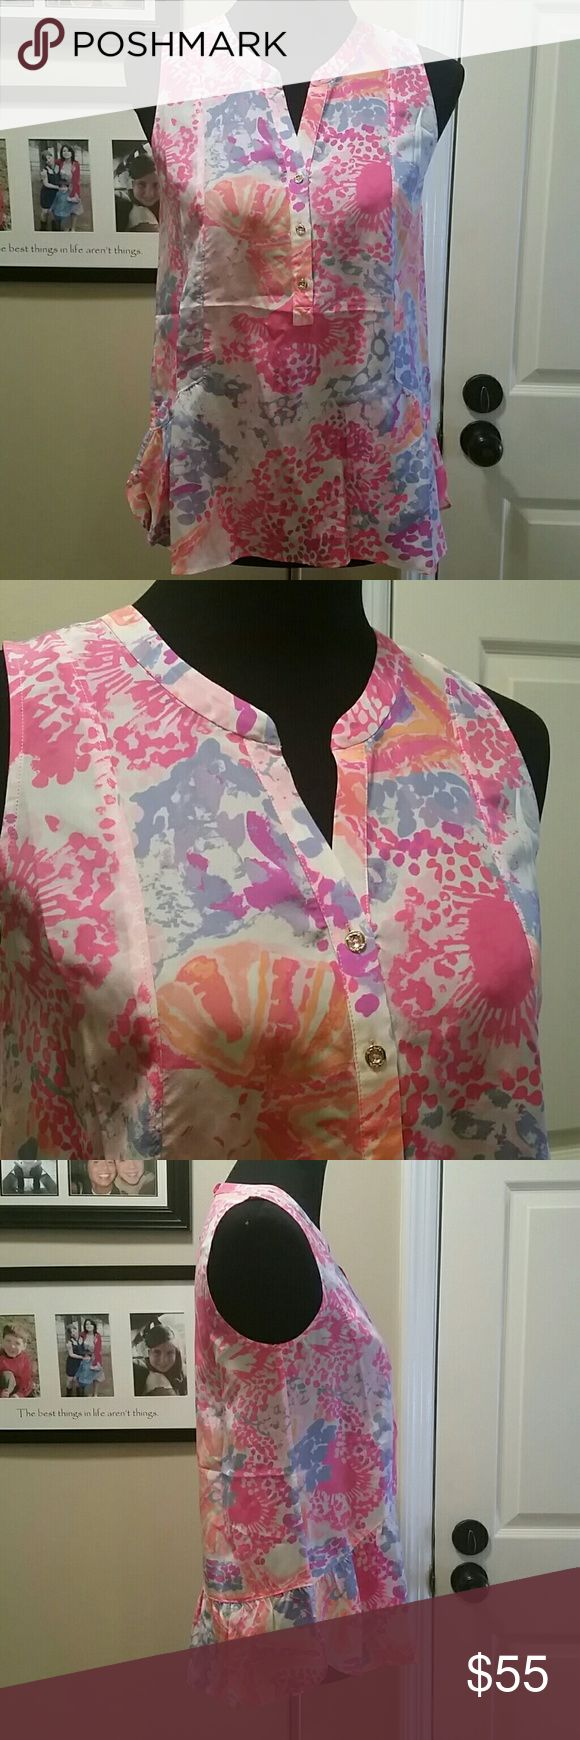 Lilly Pulitzer Kery Silk Top Lilly Pulitzer Kery Silk Top, Paradise pin, bohemian Beach. NWT Lilly Pulitzer Tops